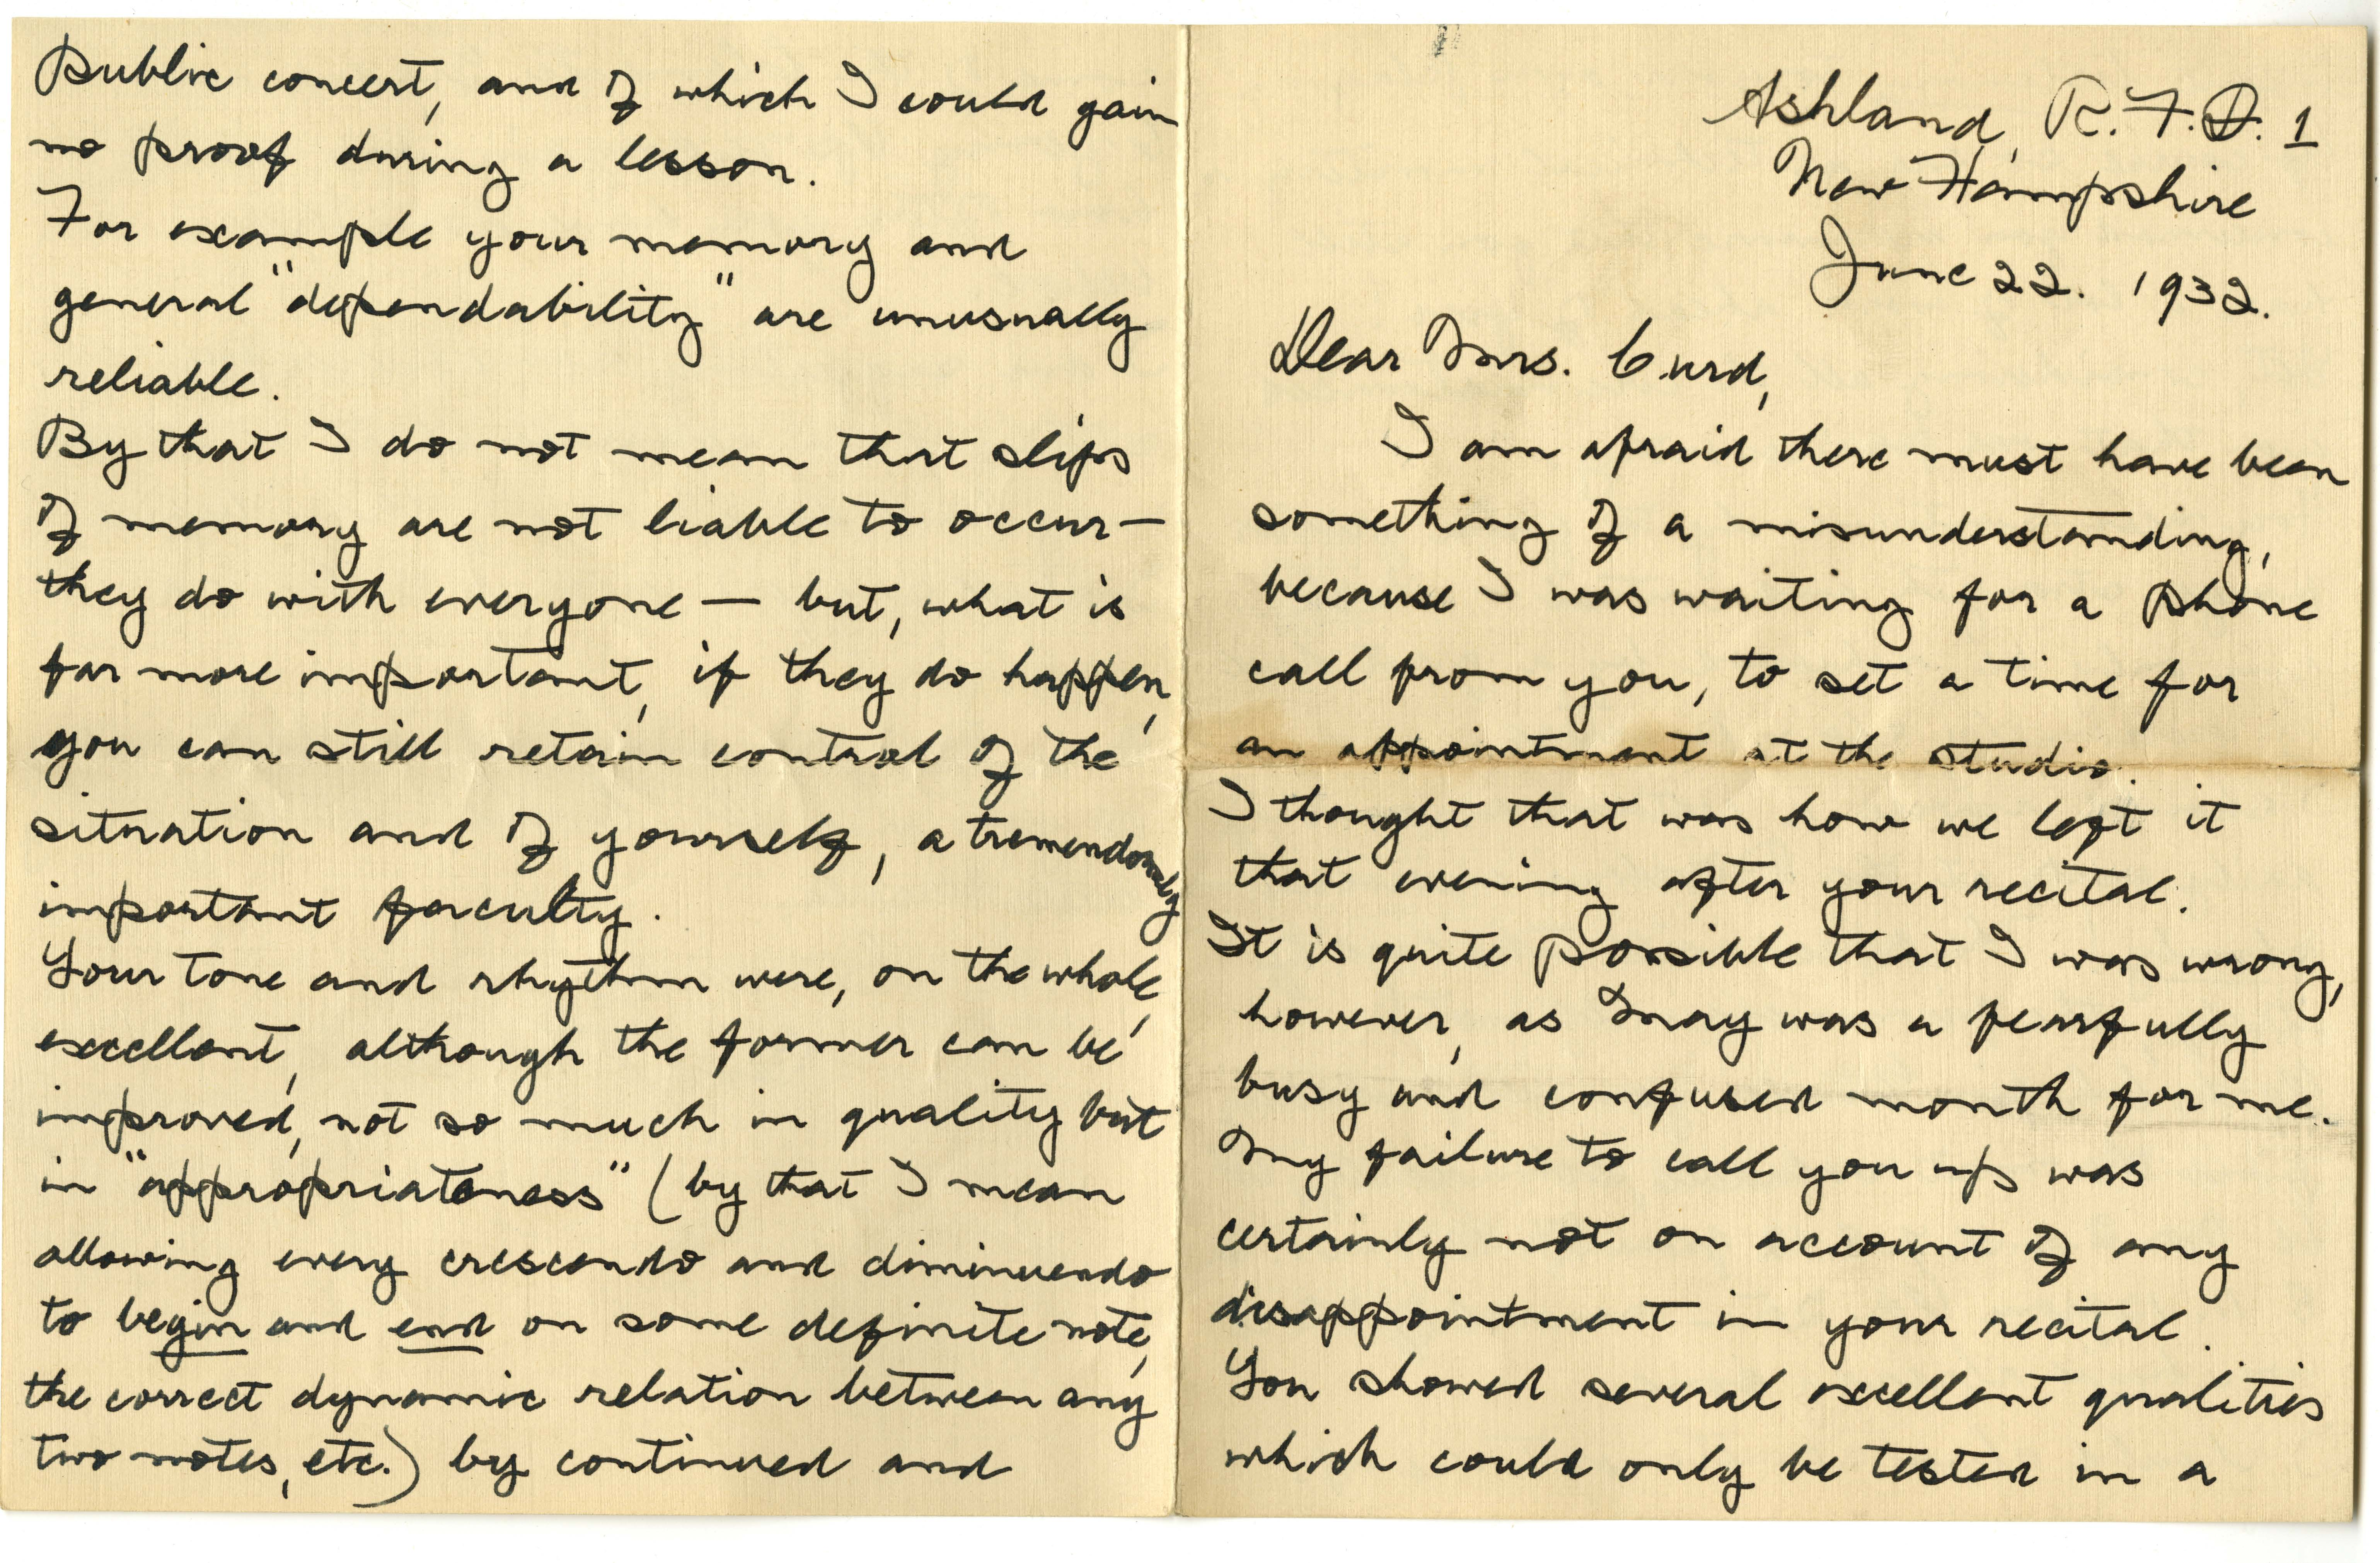 Page 1, letter from Curd's piano teacher, George Boyle, 1932. From the Ursula Curd Scrapbook 1910-1976